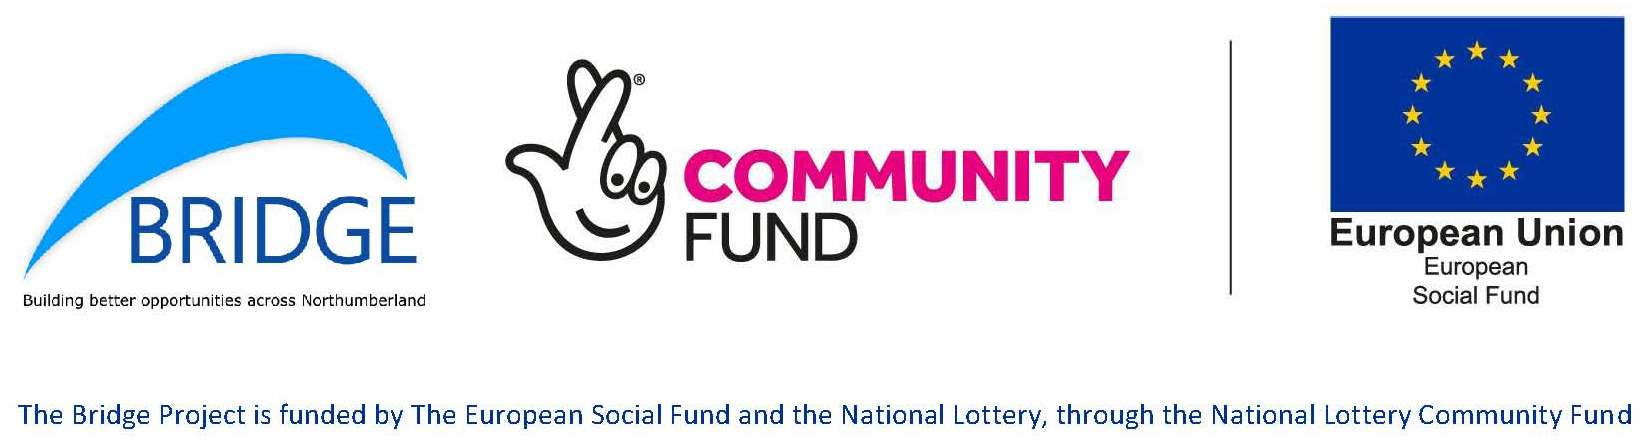 Bridge Community Fund ESF logo May 19